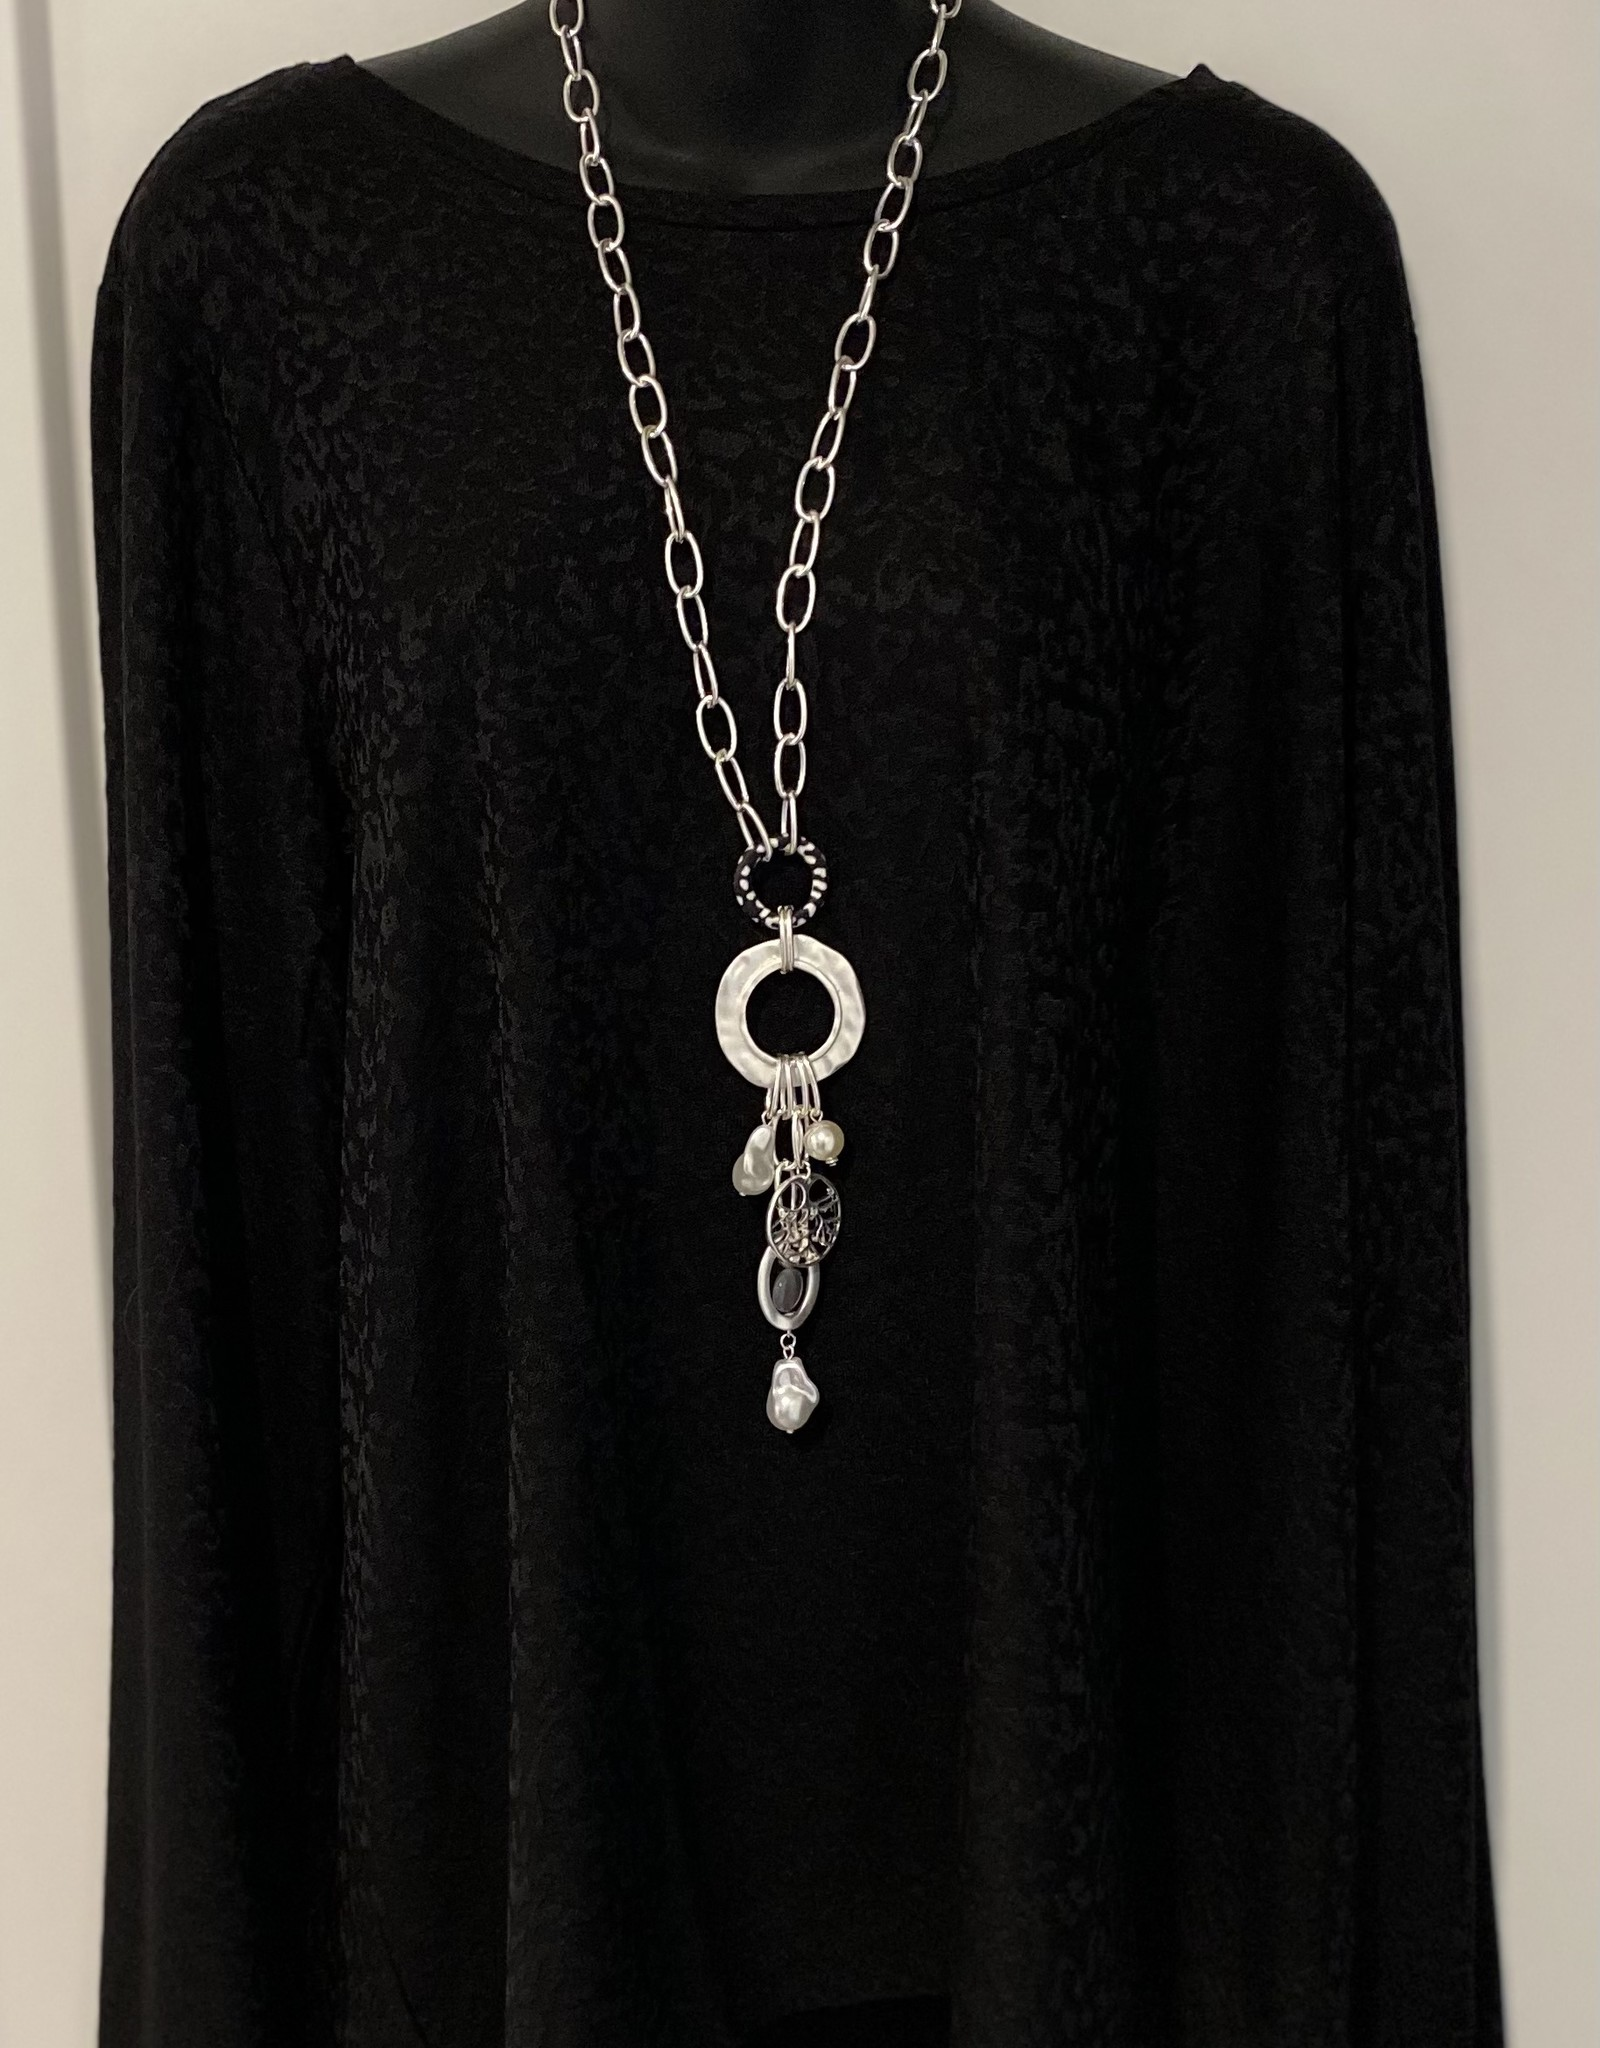 Chain Style Necklace with Loops/ Drop Down Charm Details